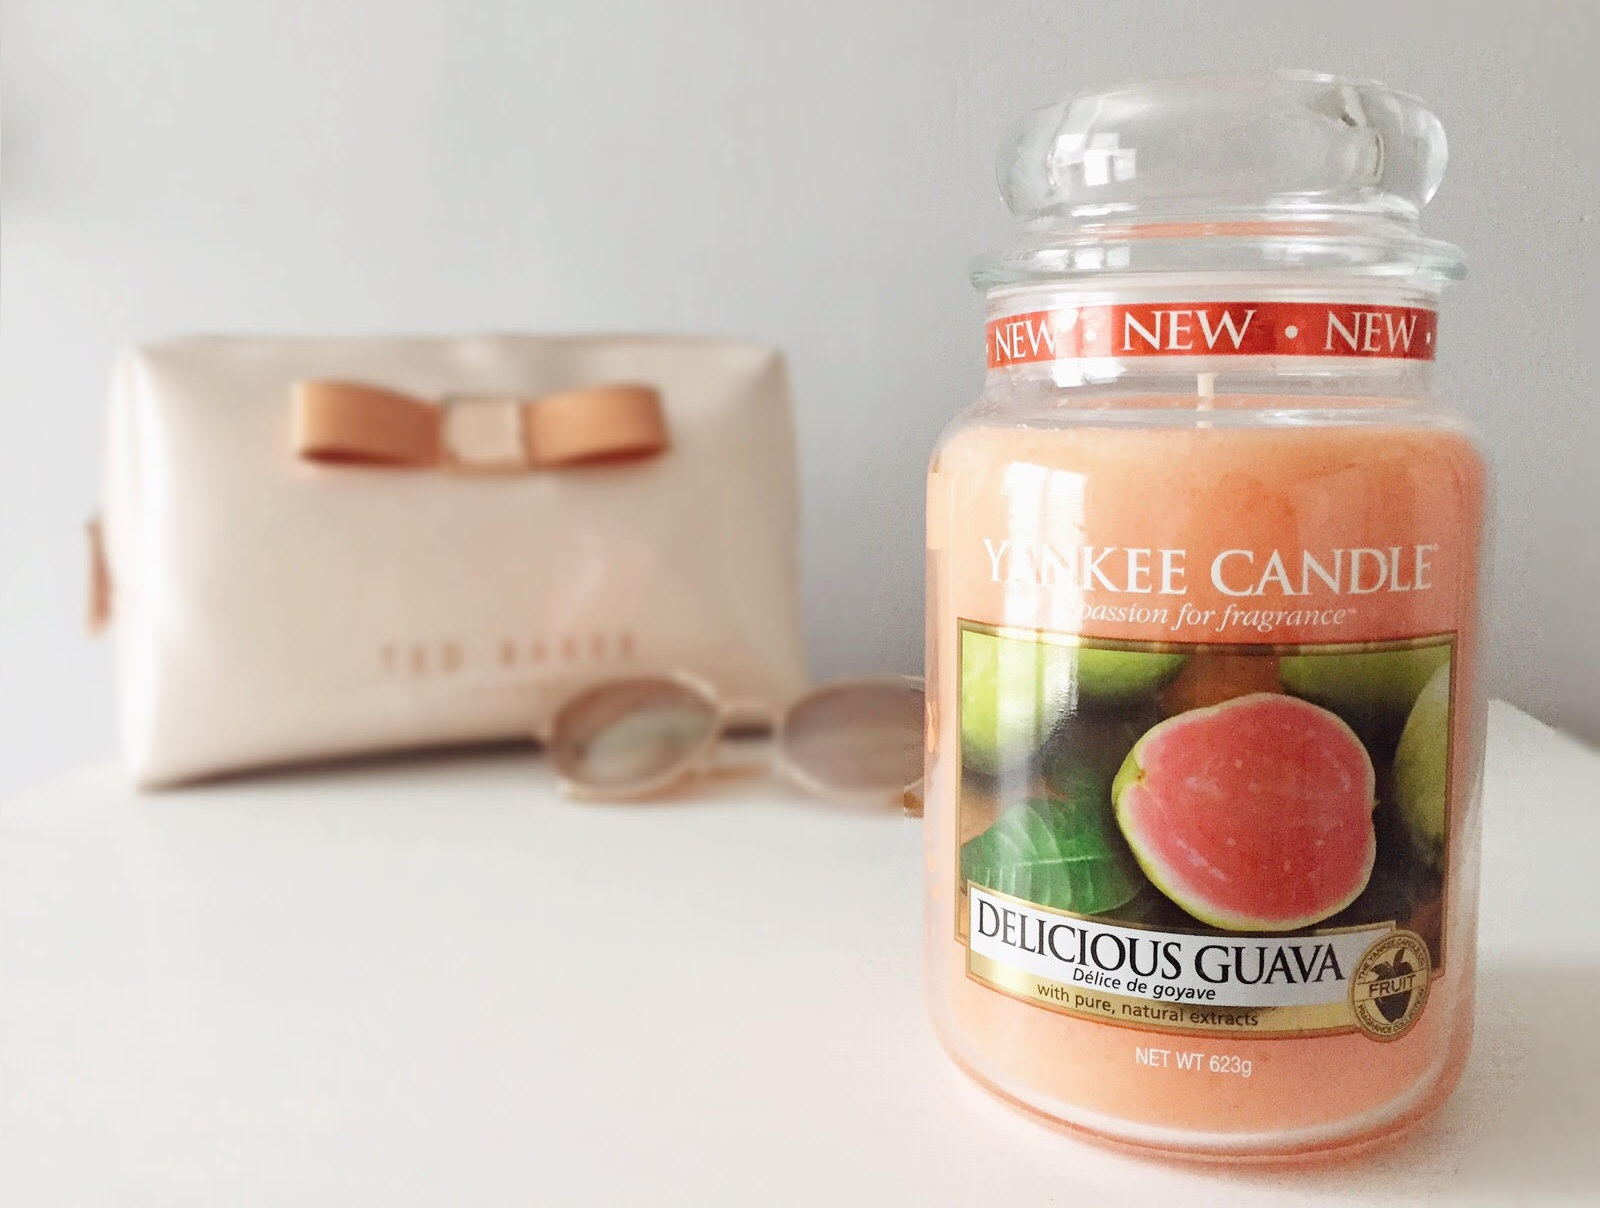 nến thơm Guava Goyave Yankee Candle